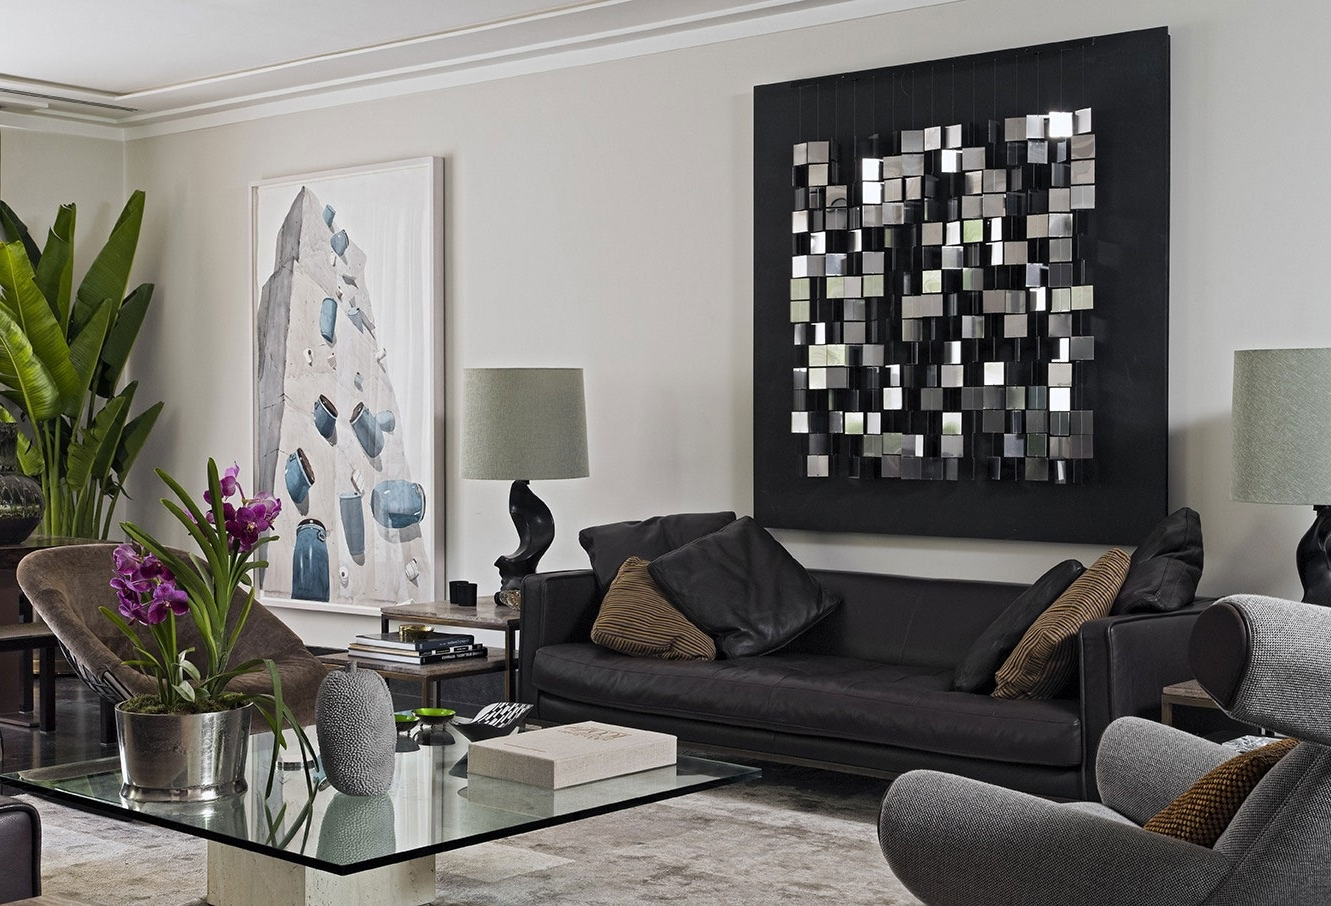 2018 Decorating: Area Rugs Costco With Wall Art And Cozy Sofa For Home Within Costco Wall Art (View 2 of 15)